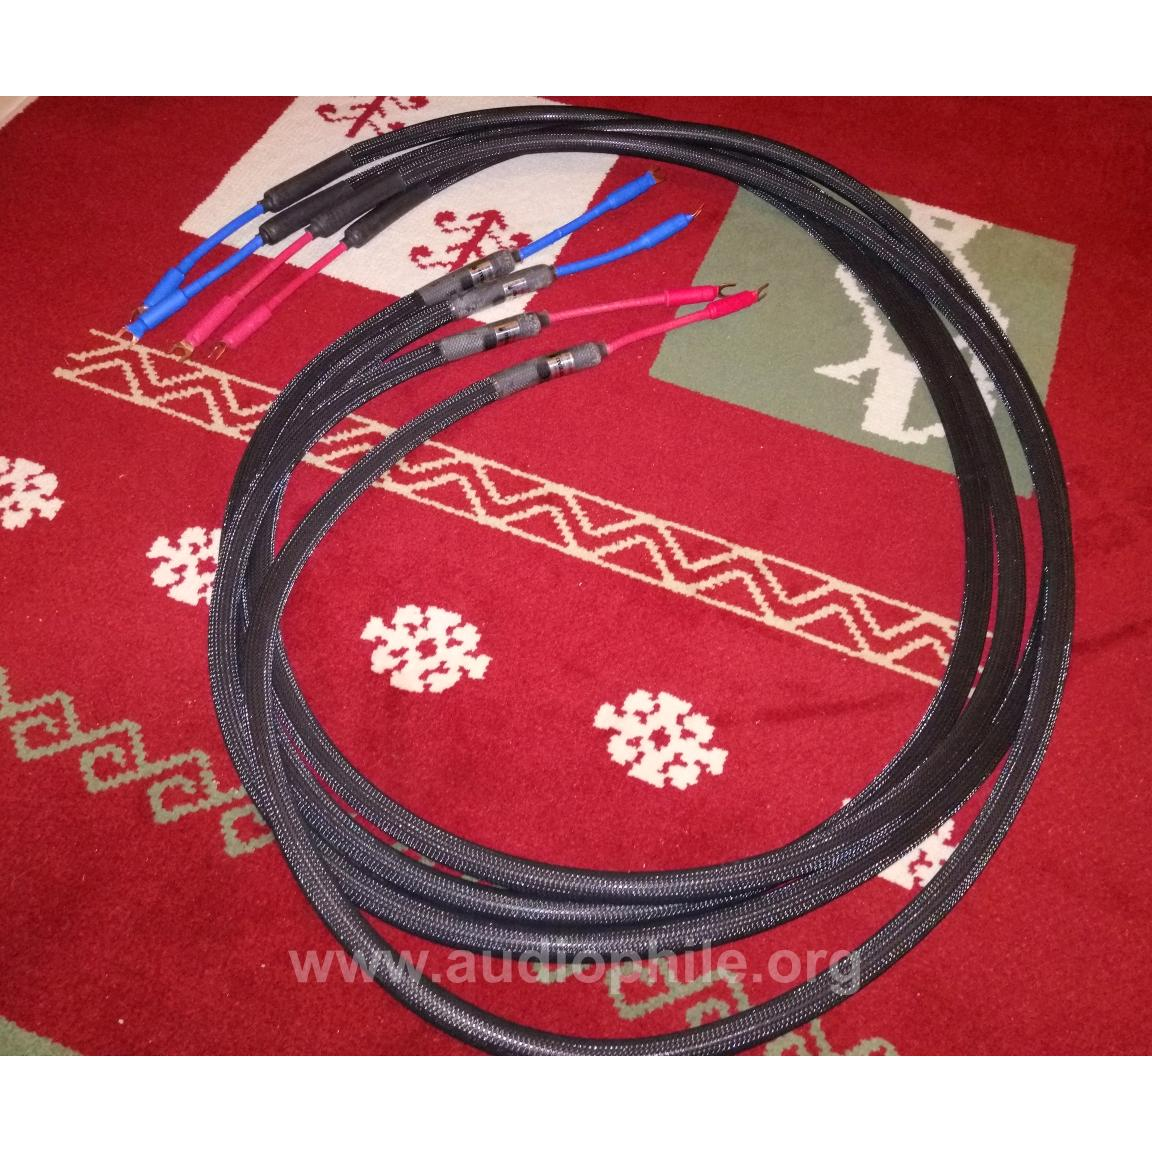 Sonoran plateau speaker cable